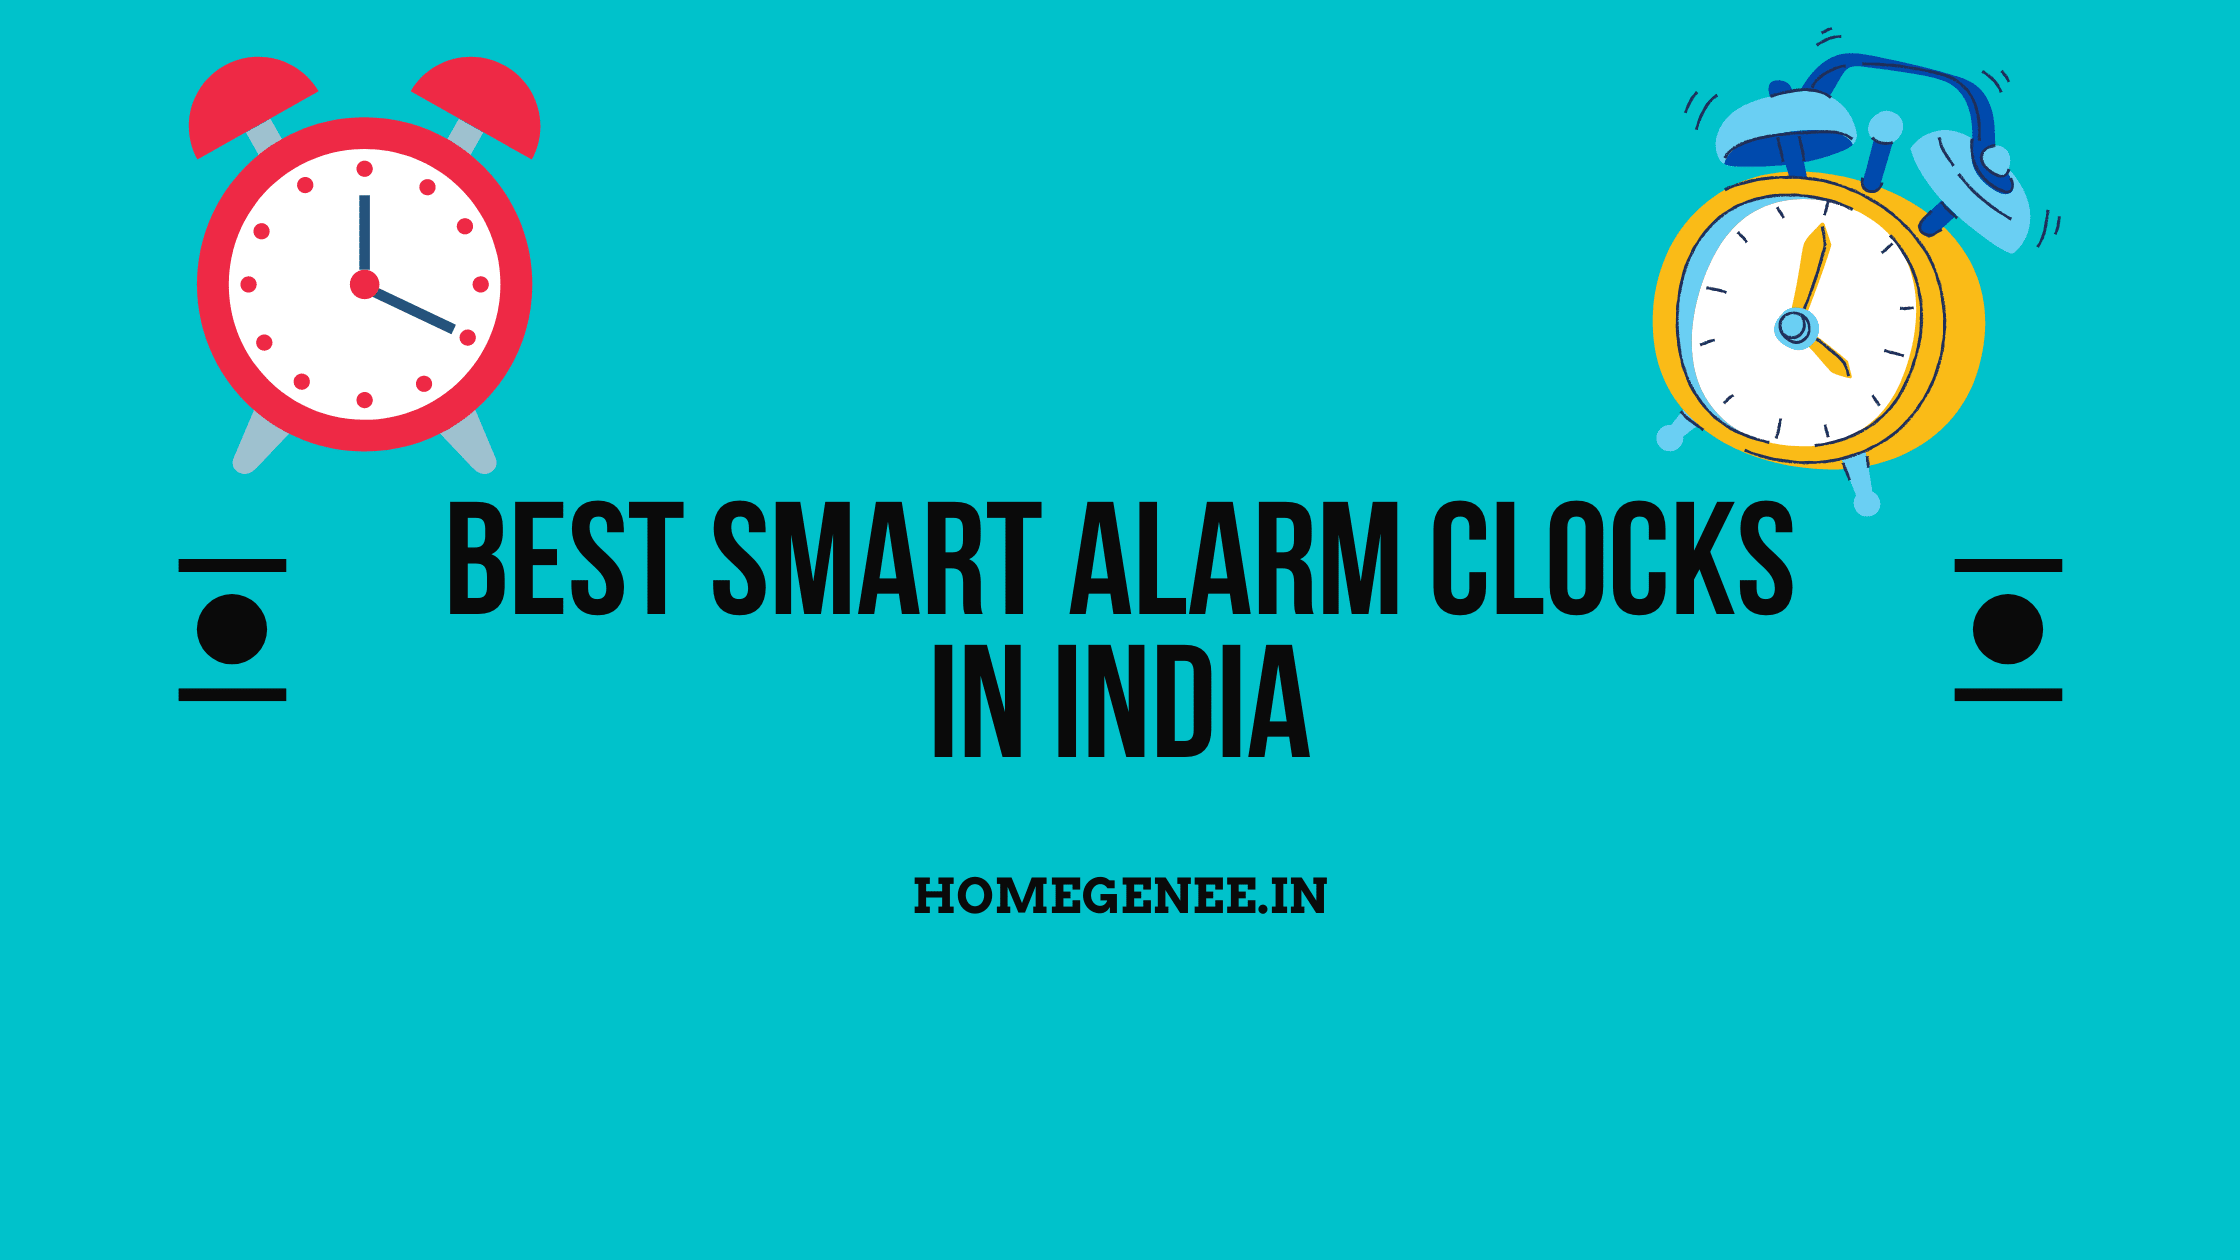 Best Smart Alarm Clocks In India (1)